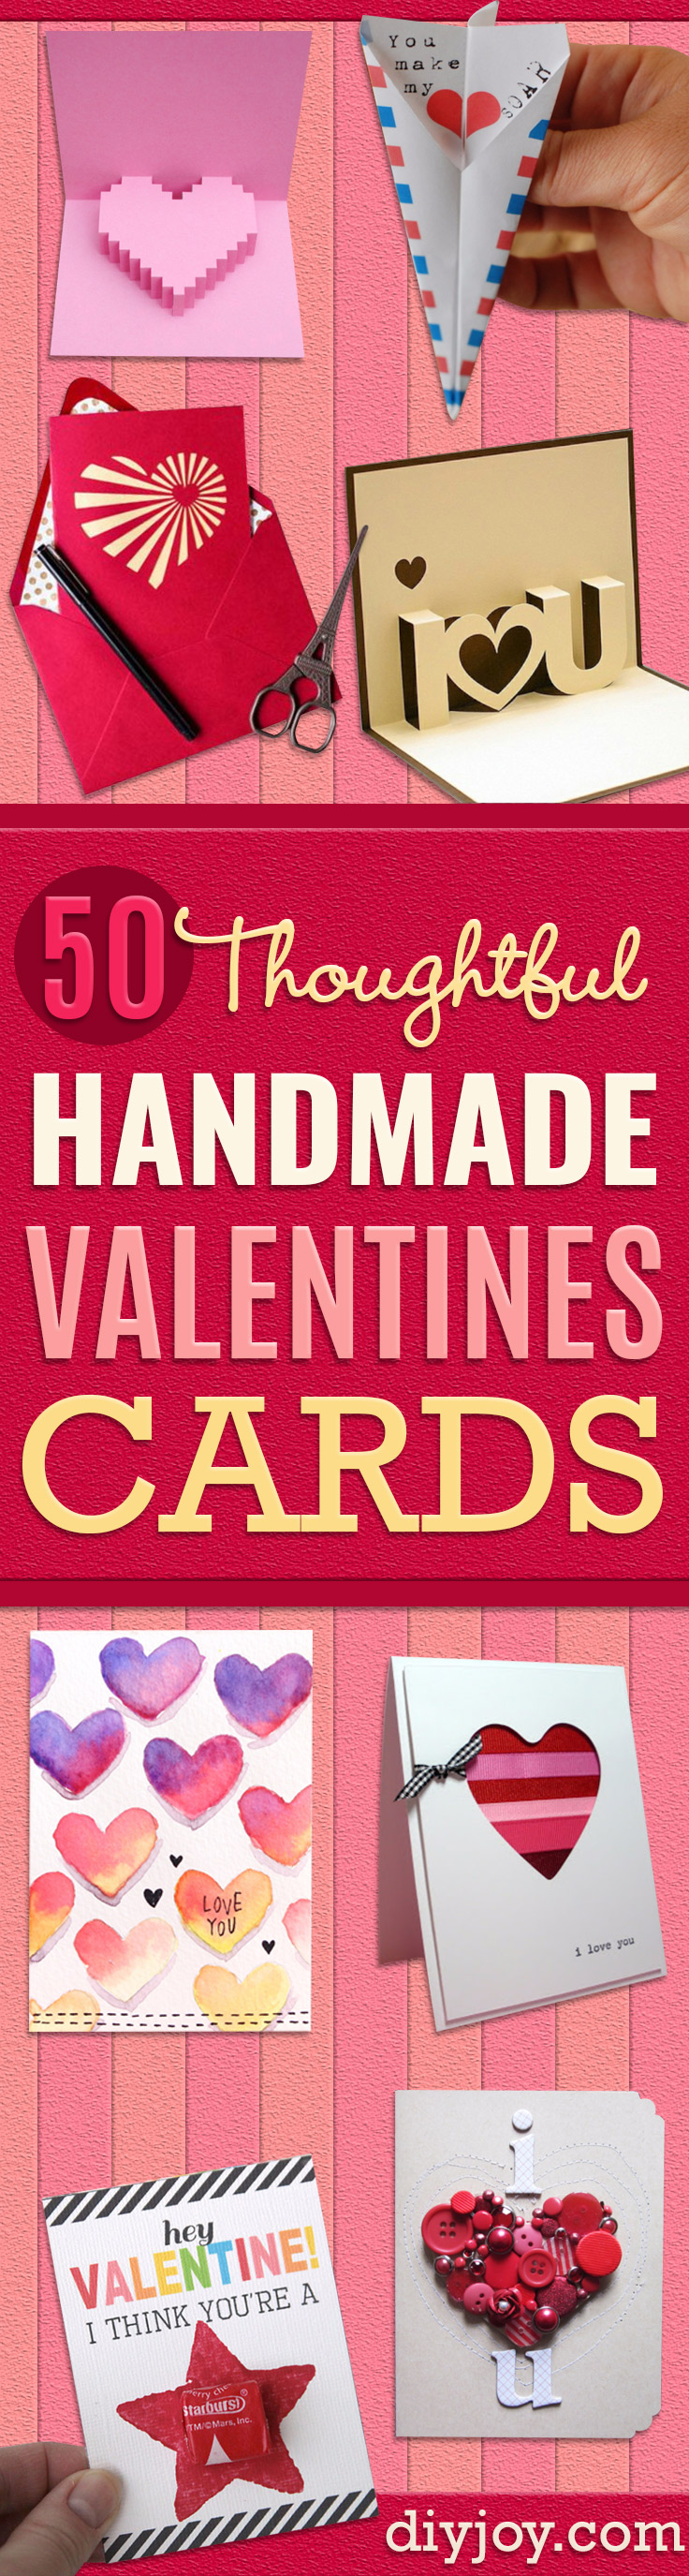 50 Thoughtful Handmade Valentines Cards DIY Joy – Handmade Valentine Day Card